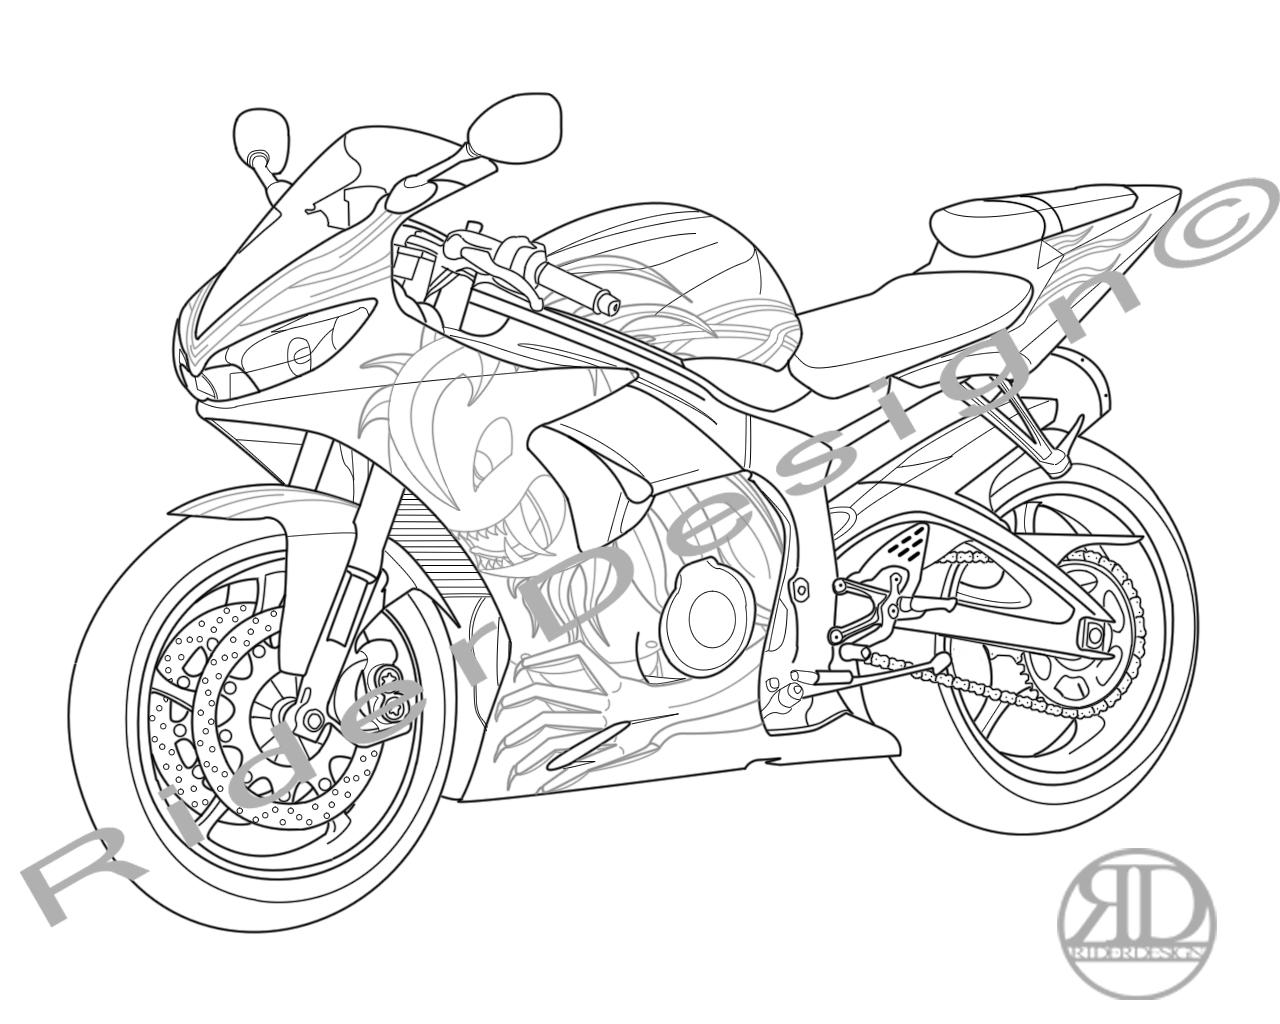 Yamaha R6 Vector Outline By 360rider On Deviantart